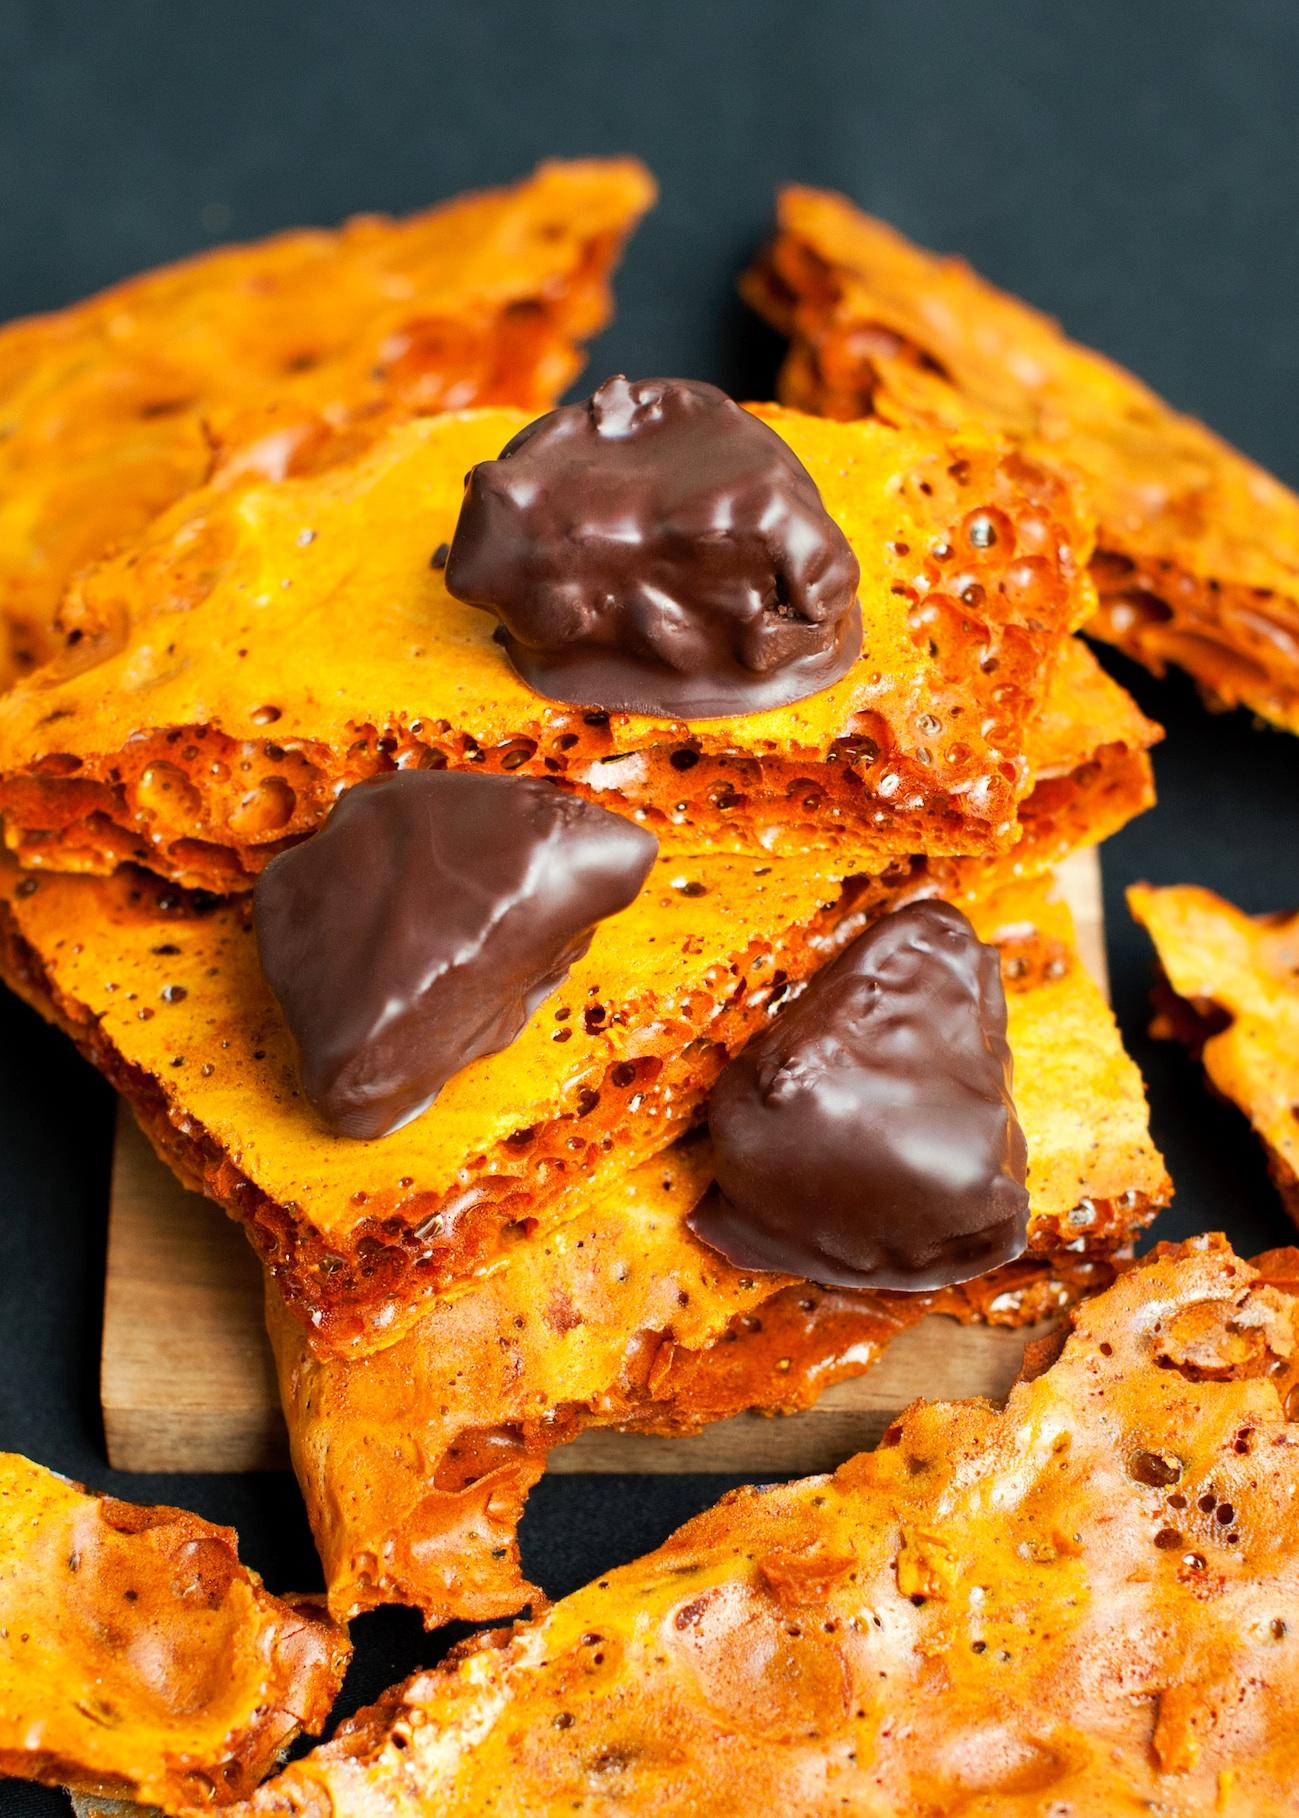 Honeycomb & Fudge